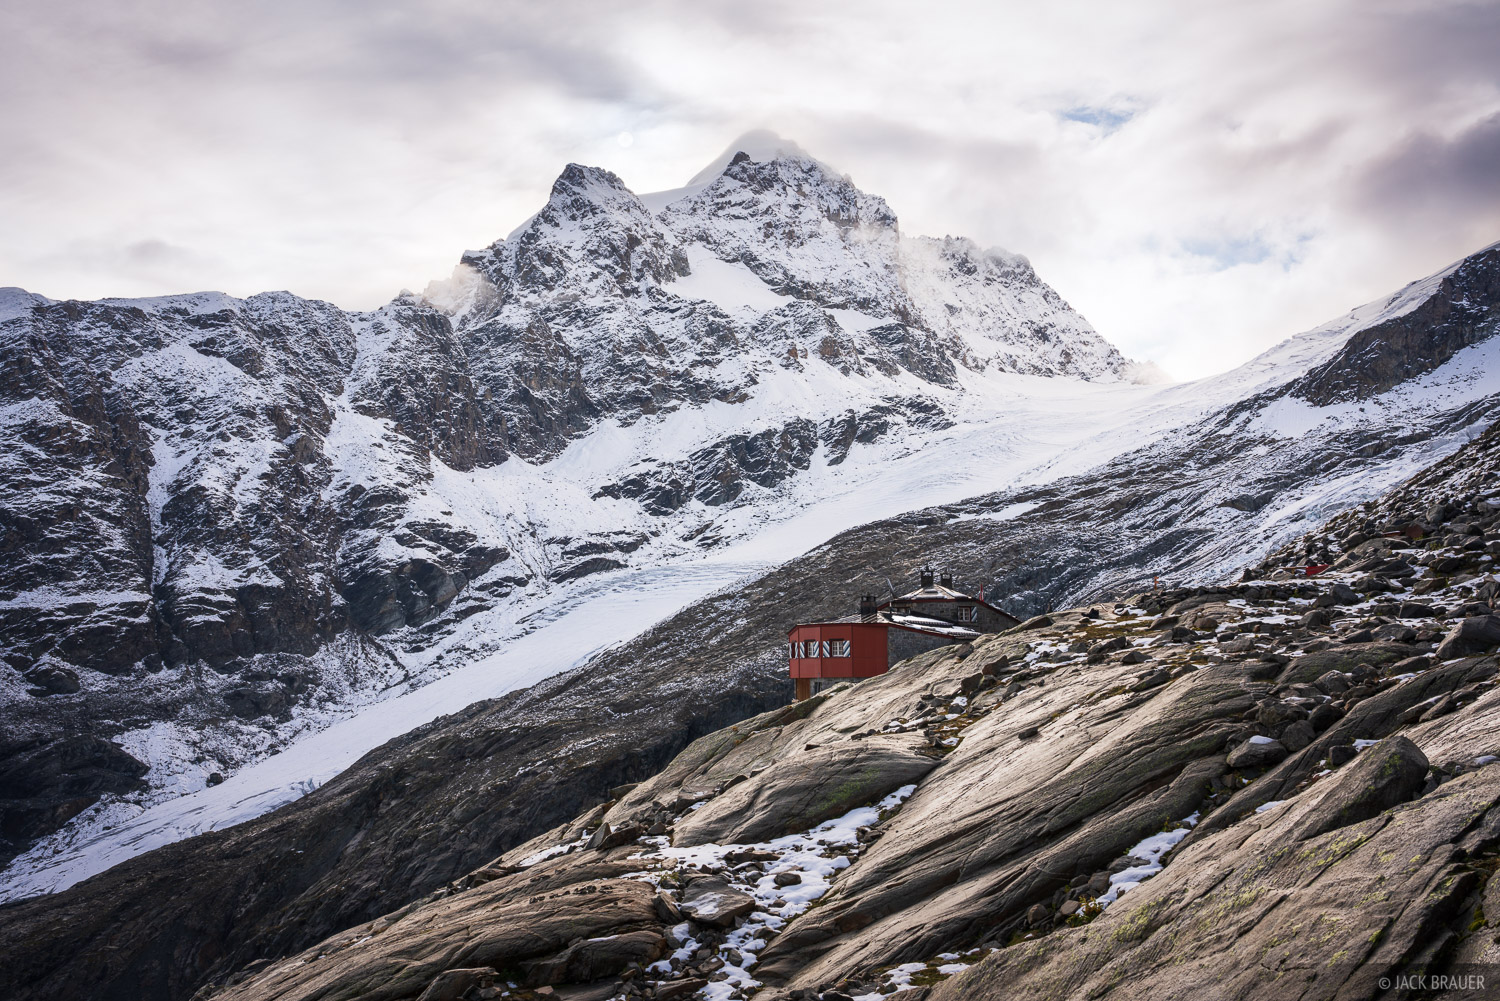 The Coaz hut with a backdrop of glaciers and rugged peaks.